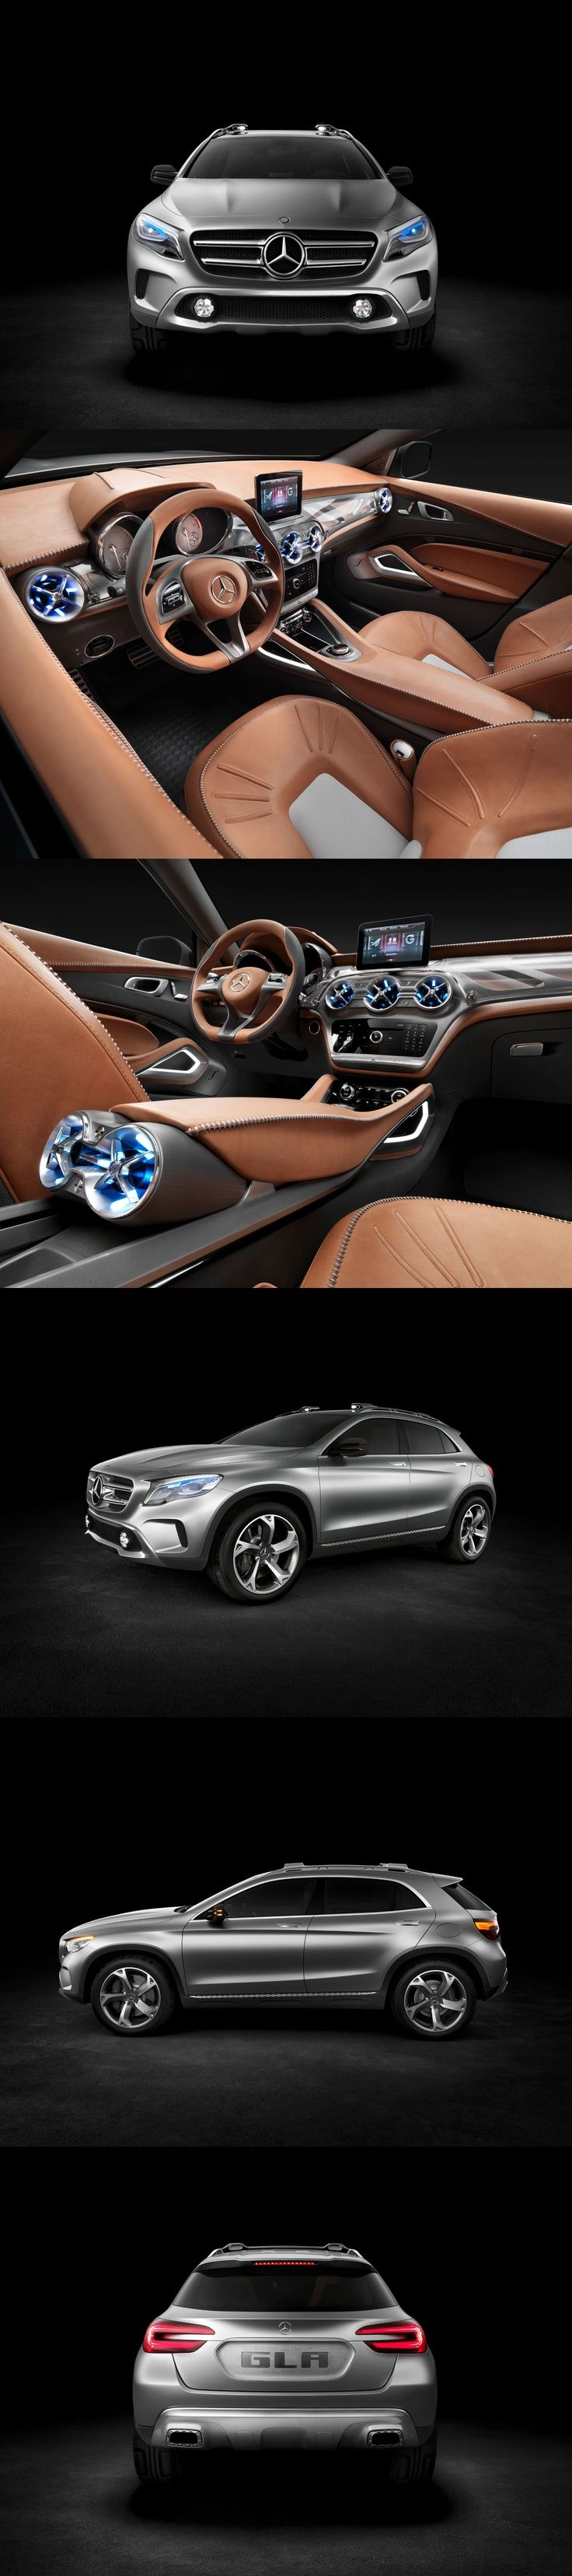 Suv auto - I want this...uhhh...so badly! Mercedes-Benz GLA